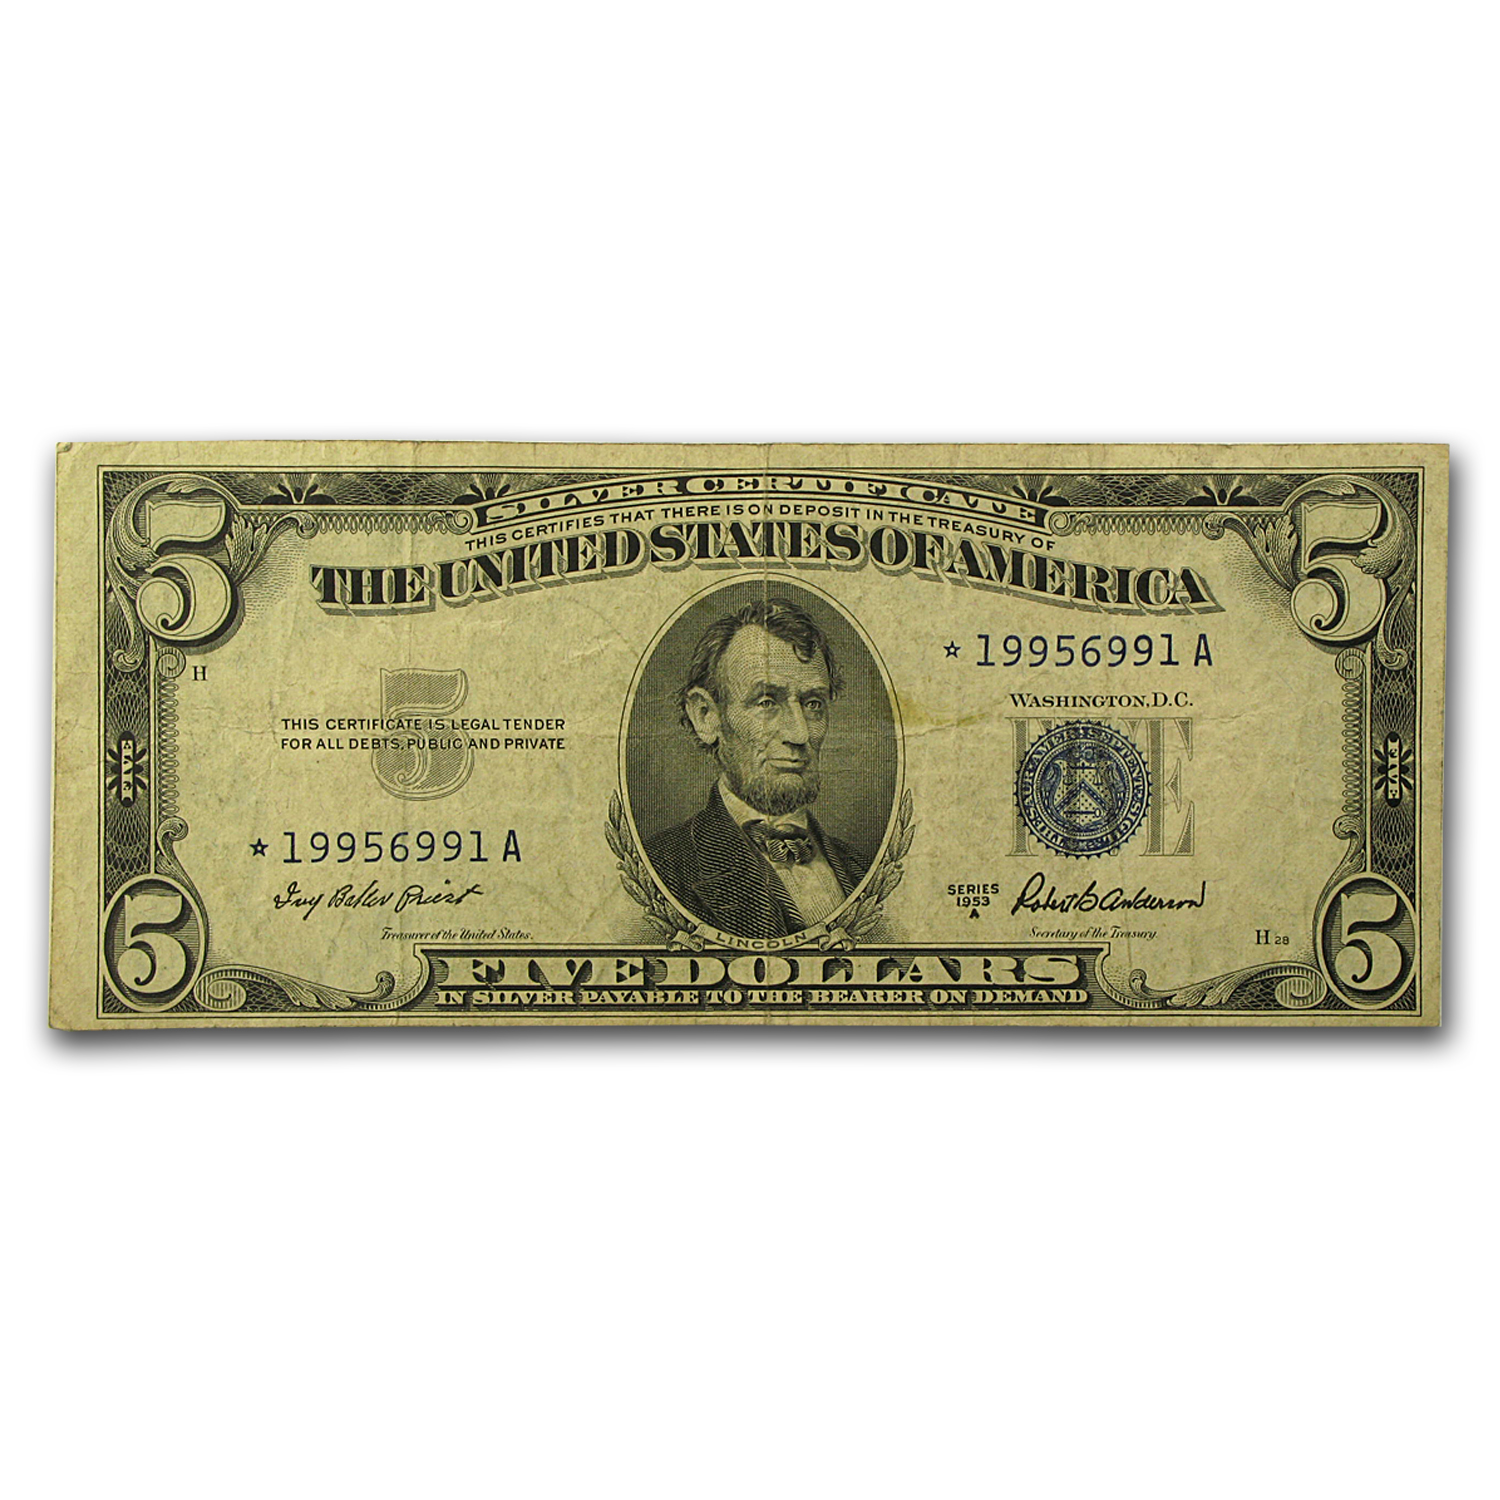 1953-1953-B* $5.00 Silver Certificates VG-VF (Star Notes)